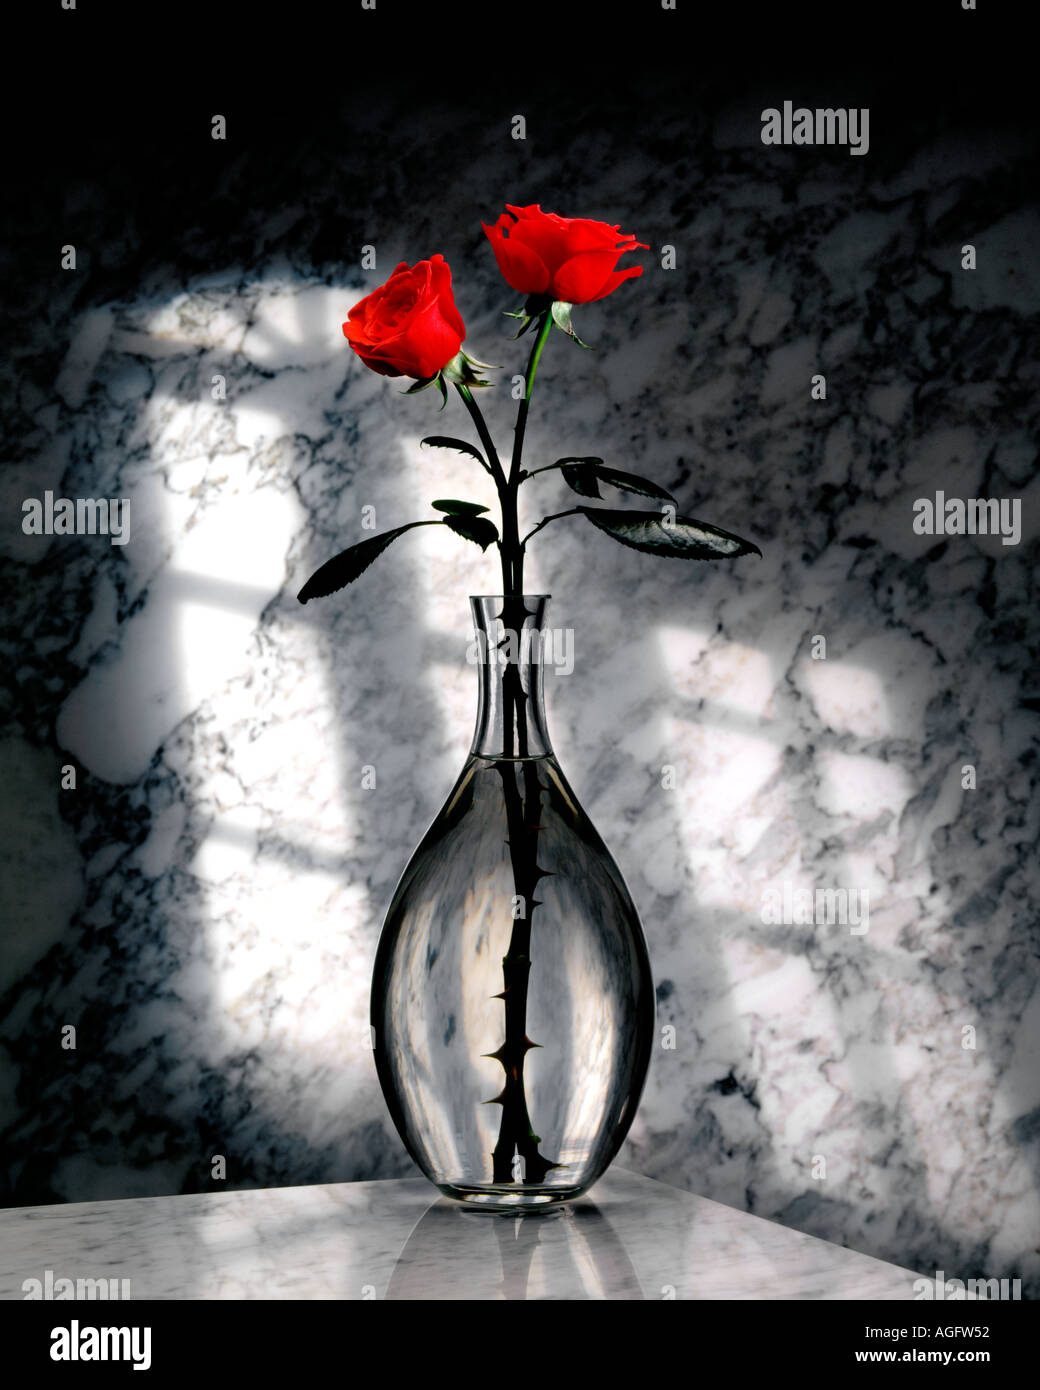 Two Red Roses In A Glass Vase On A Marble Background 2